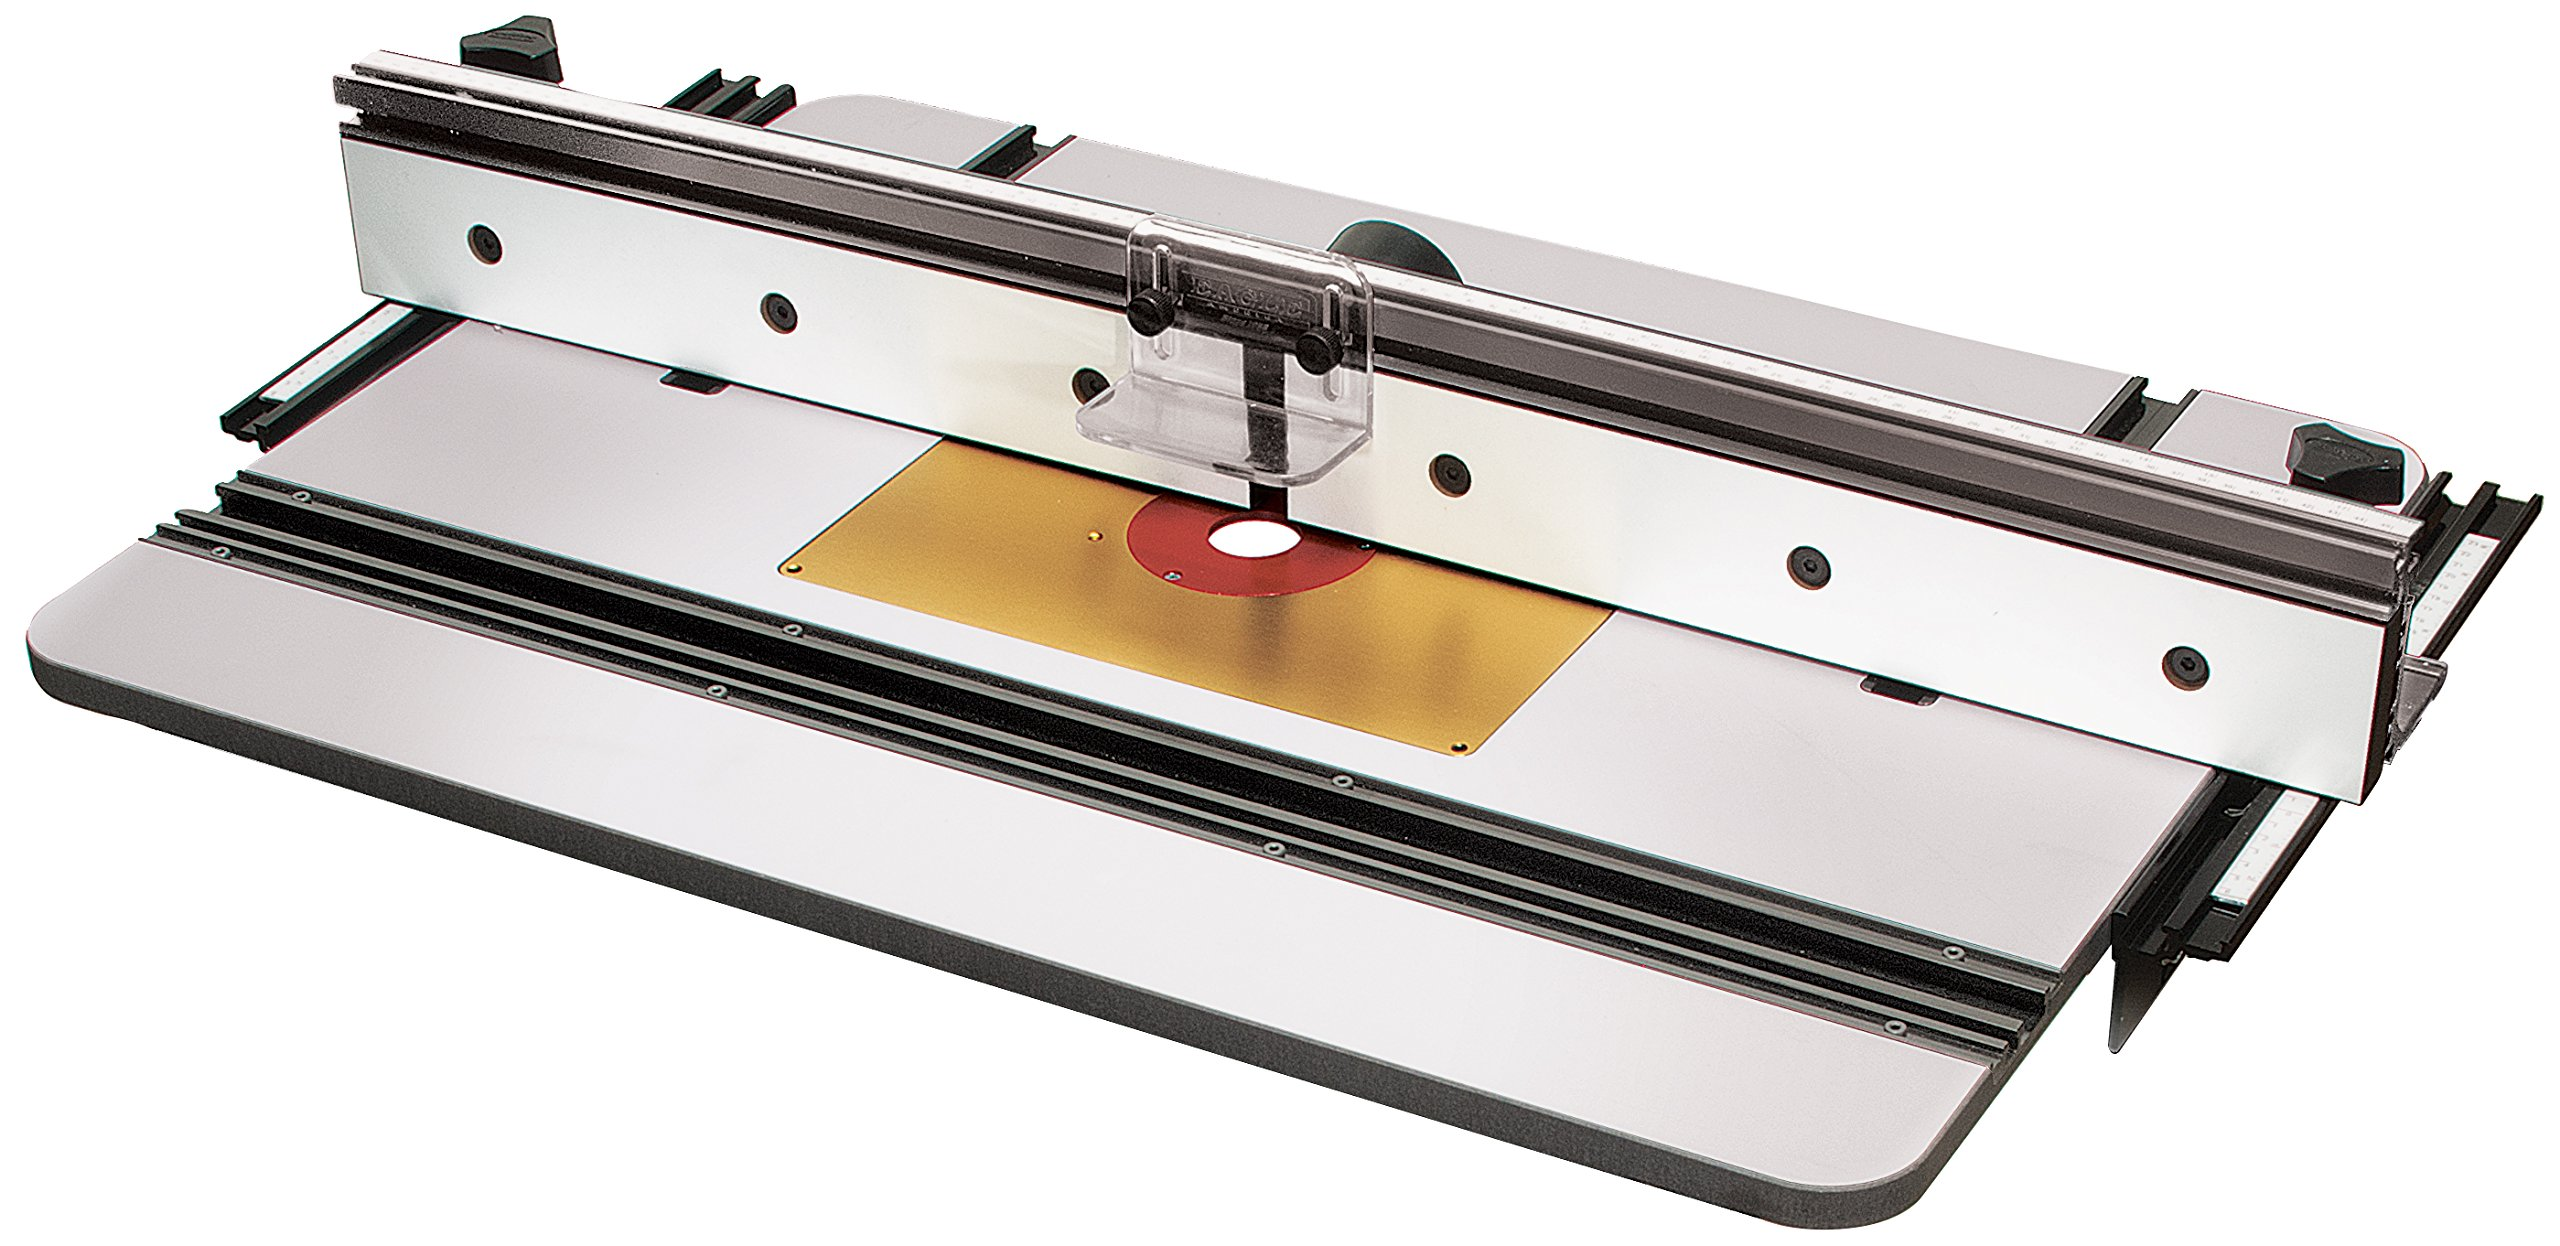 MLCS 9580 Phenolic Router Table Top, X1 Fence and Aluminum Insert Plate